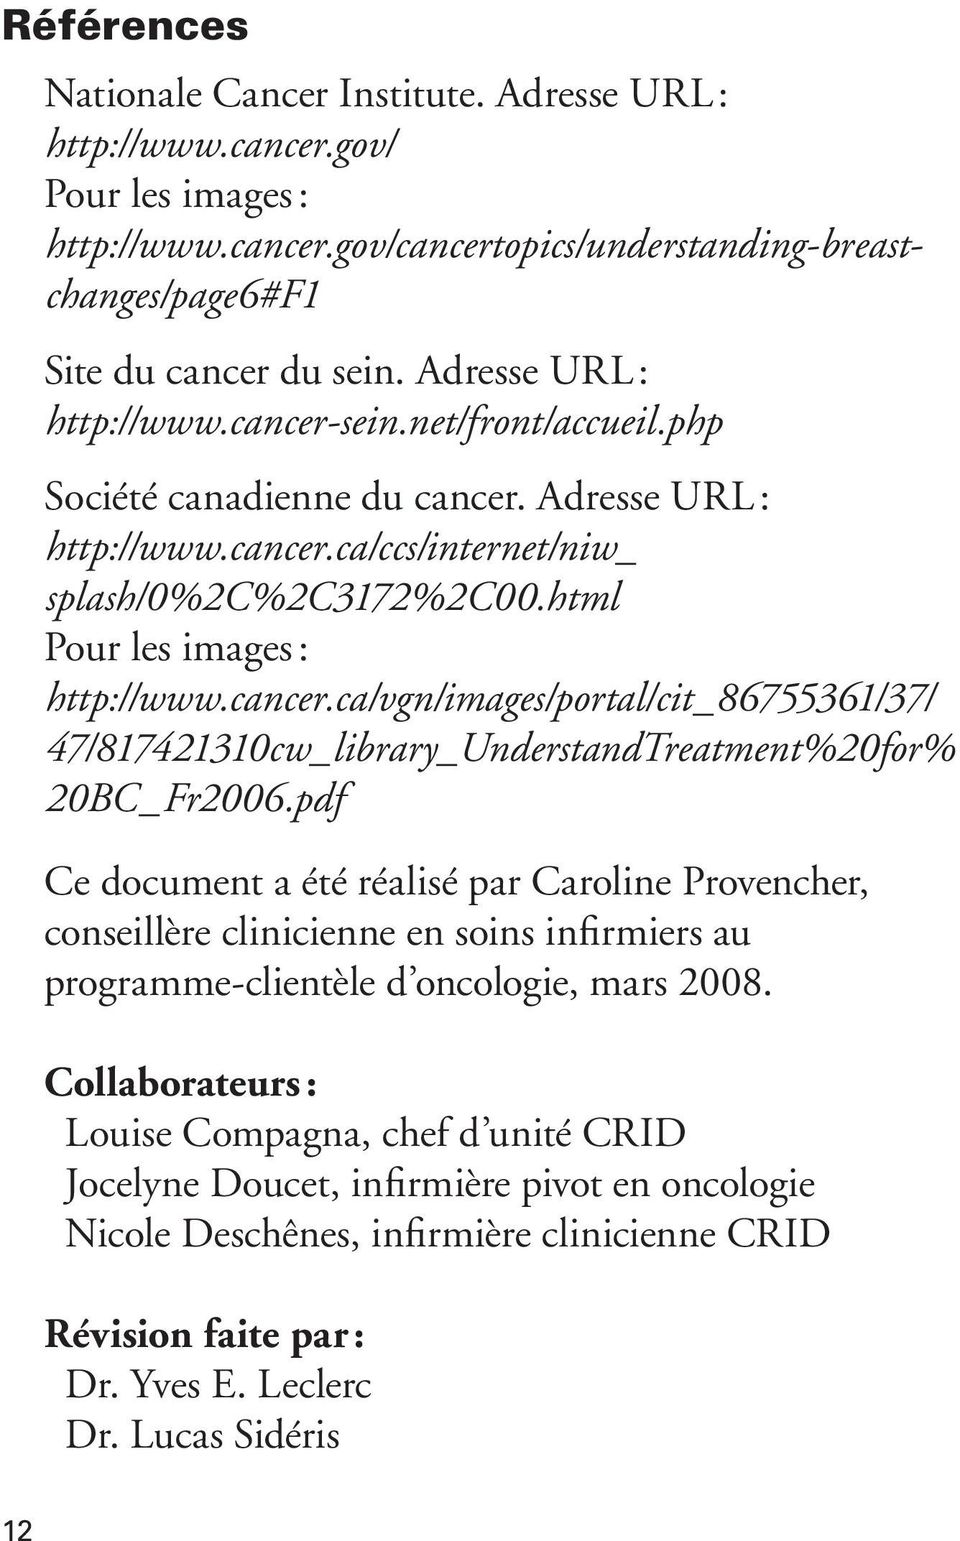 cancer.ca/vgn/images/portal/cit_86755361/37/ 47/817421310cw_library_UnderstandTreatment%20for% 20BC_Fr2006.